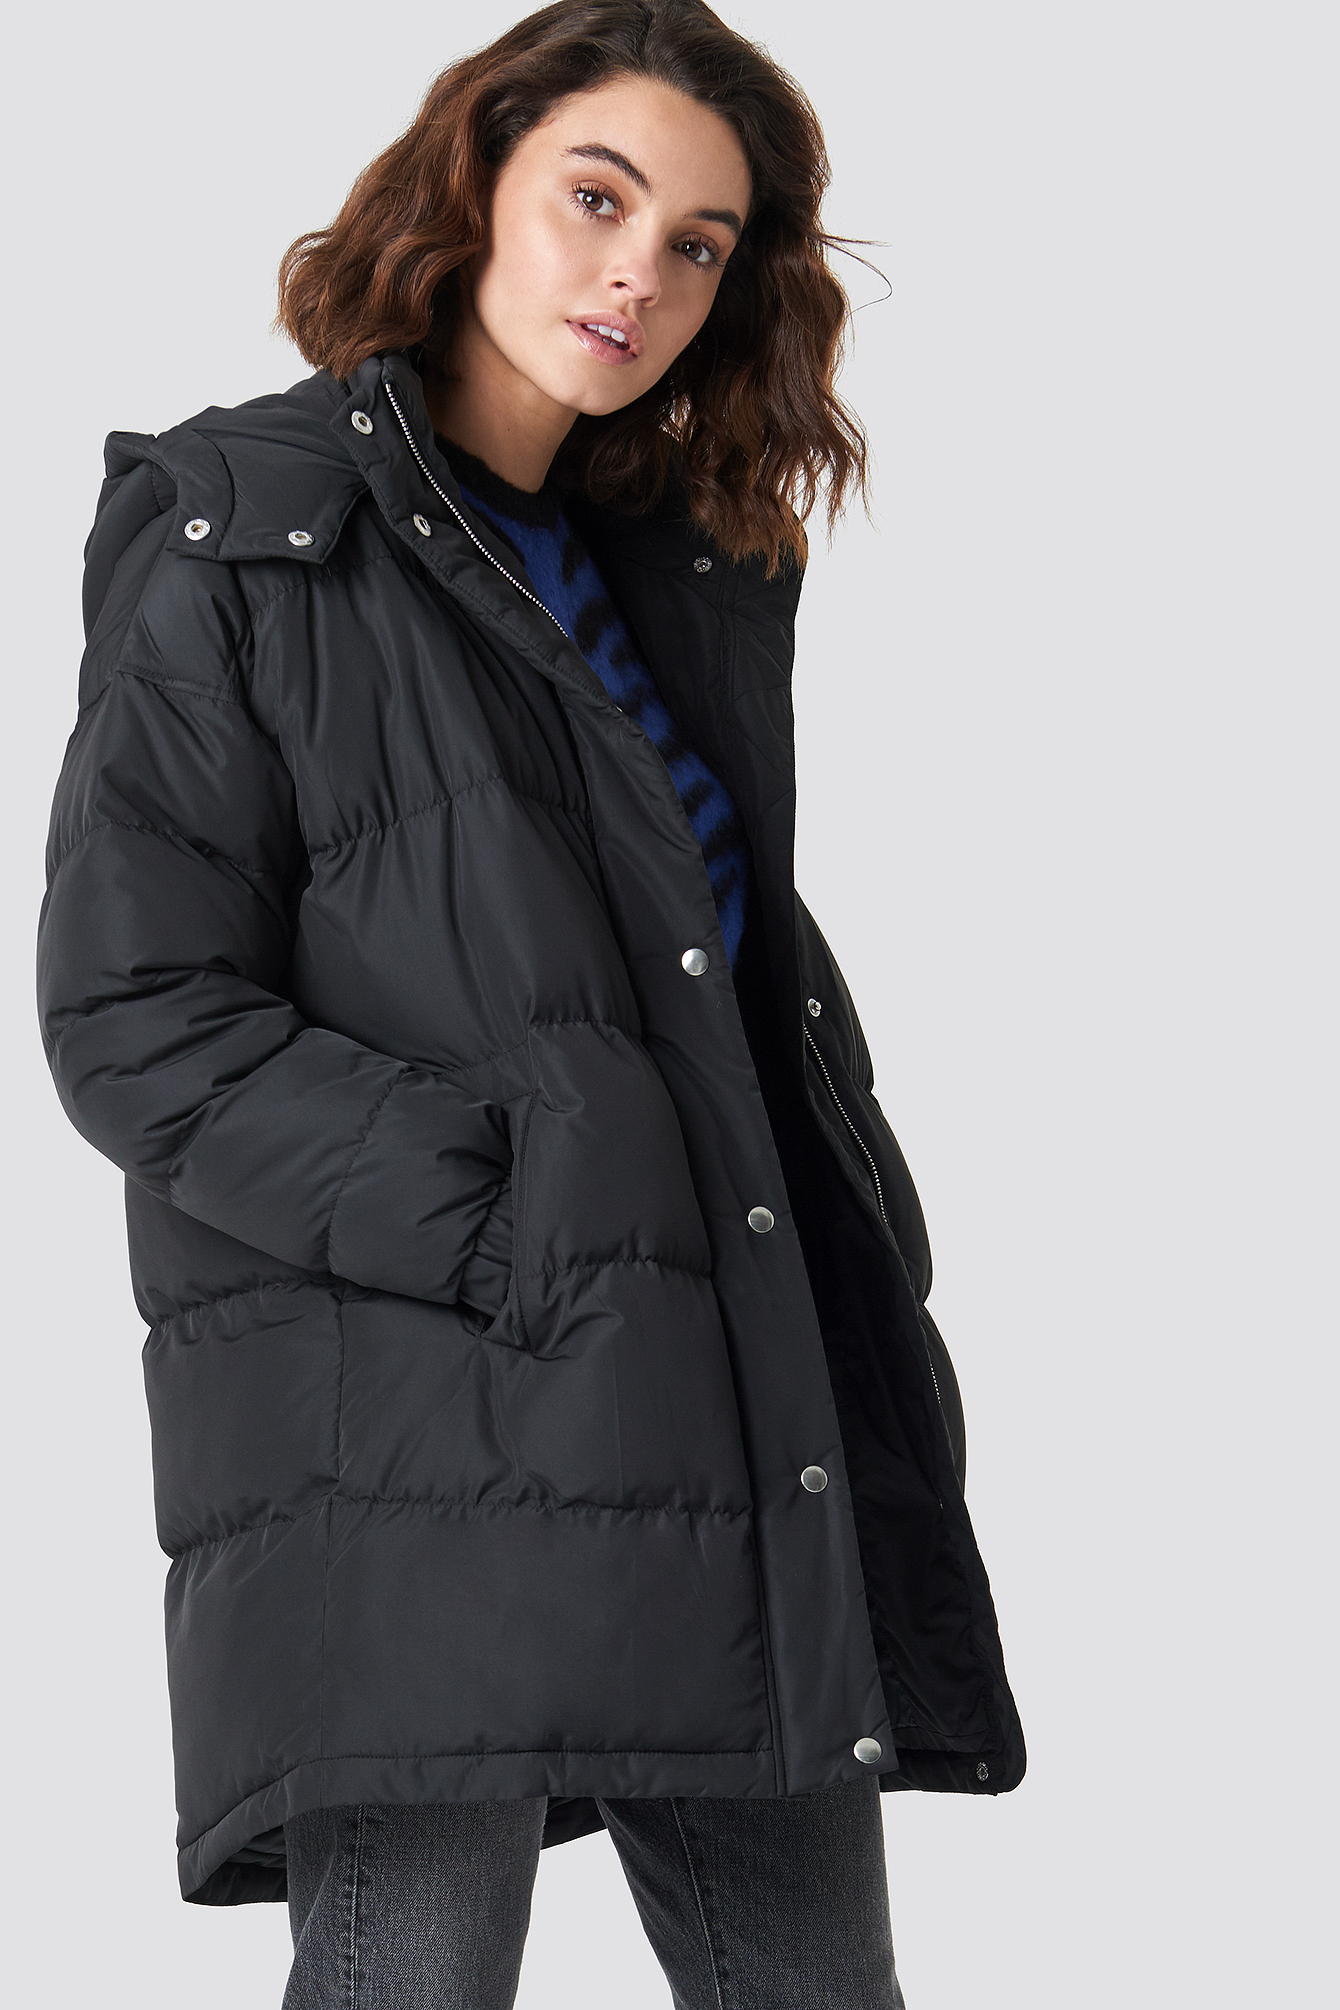 sparkz -  Roma Mid Coat - Black